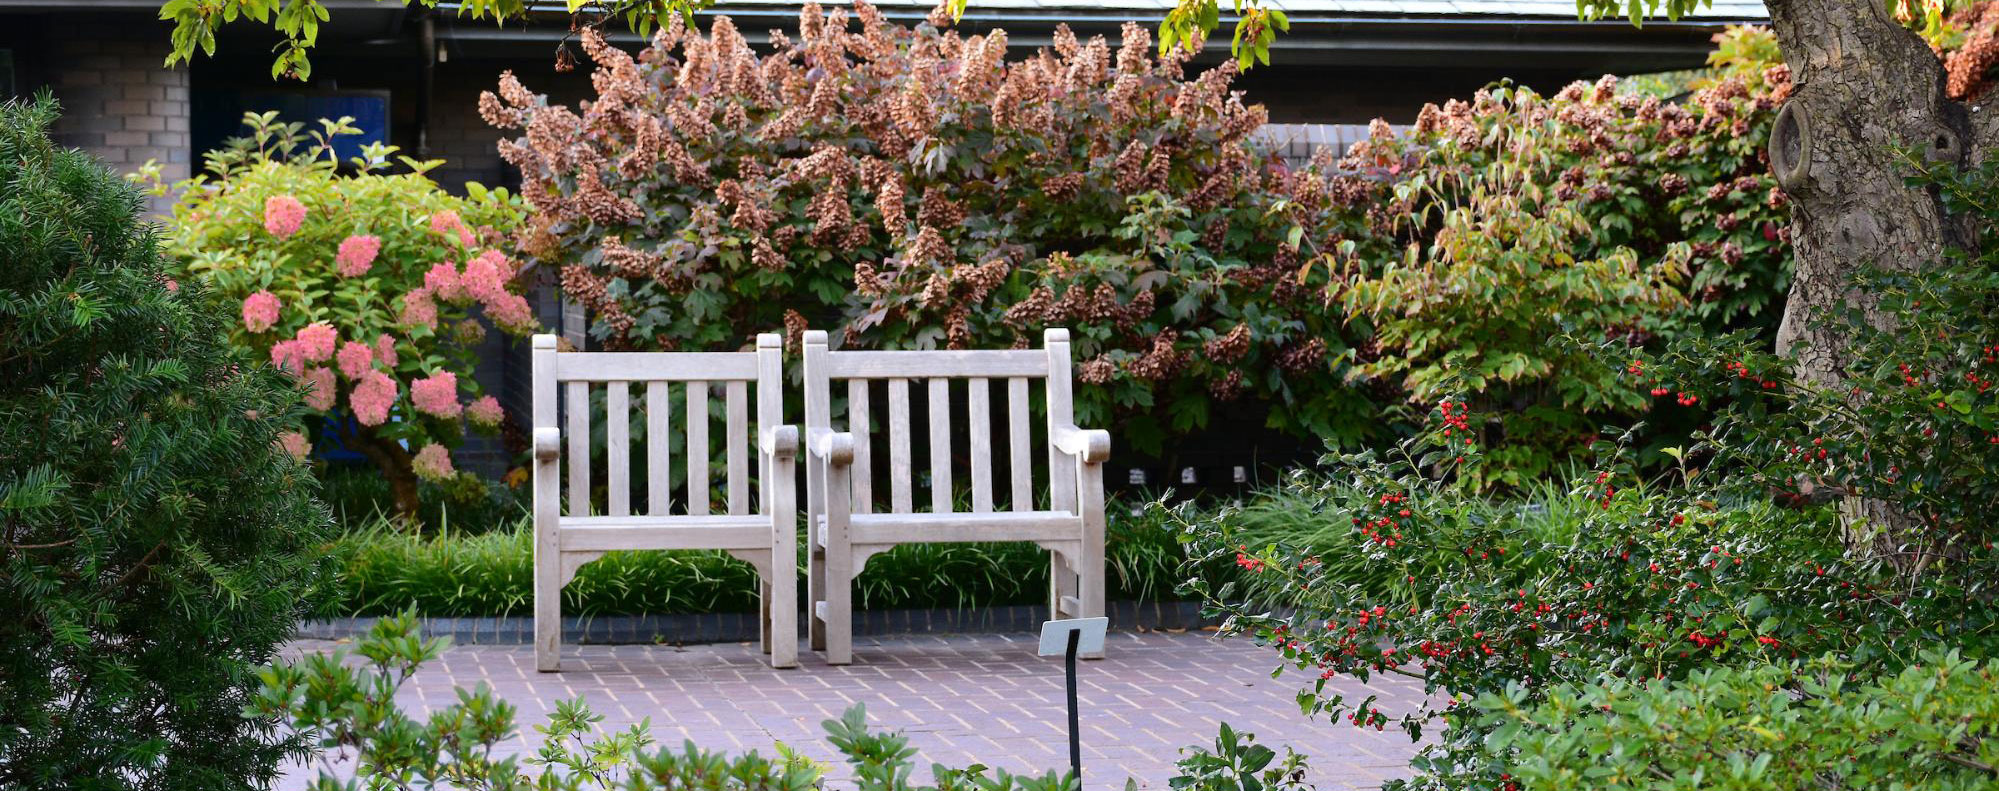 bench surrounded by shrubs and flowering trees